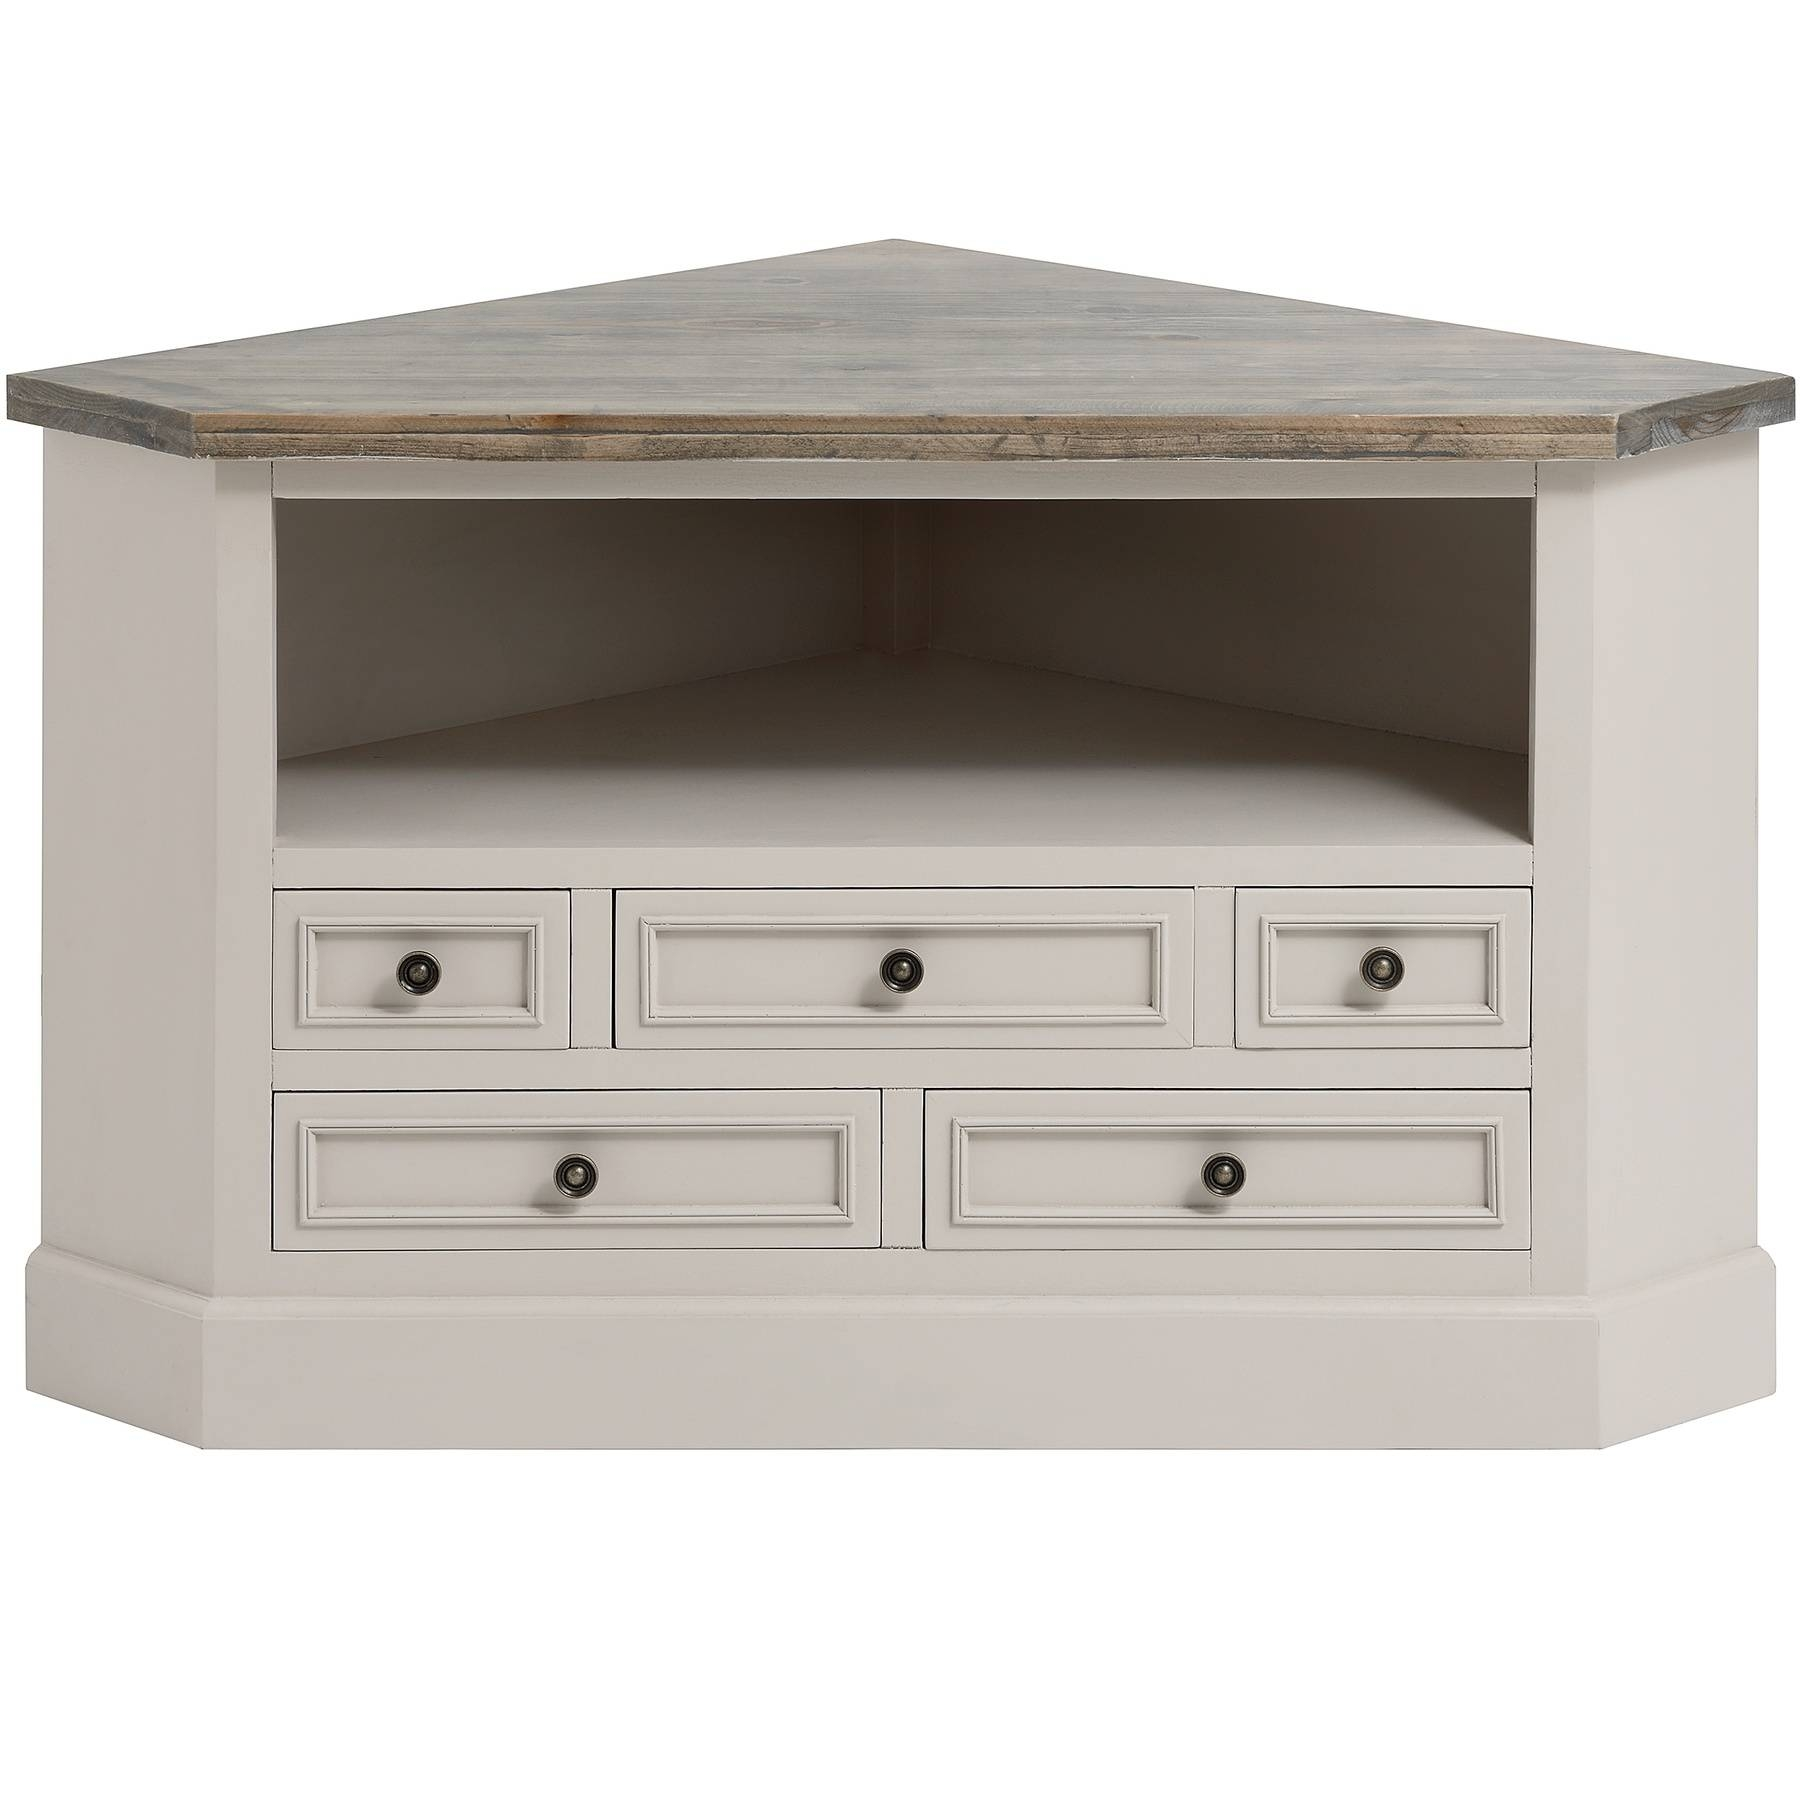 Rustic White Painted Walnut Wood Corner Tv Stand With Drawers Of Intended For Walnut Corner Tv Stands (View 10 of 15)